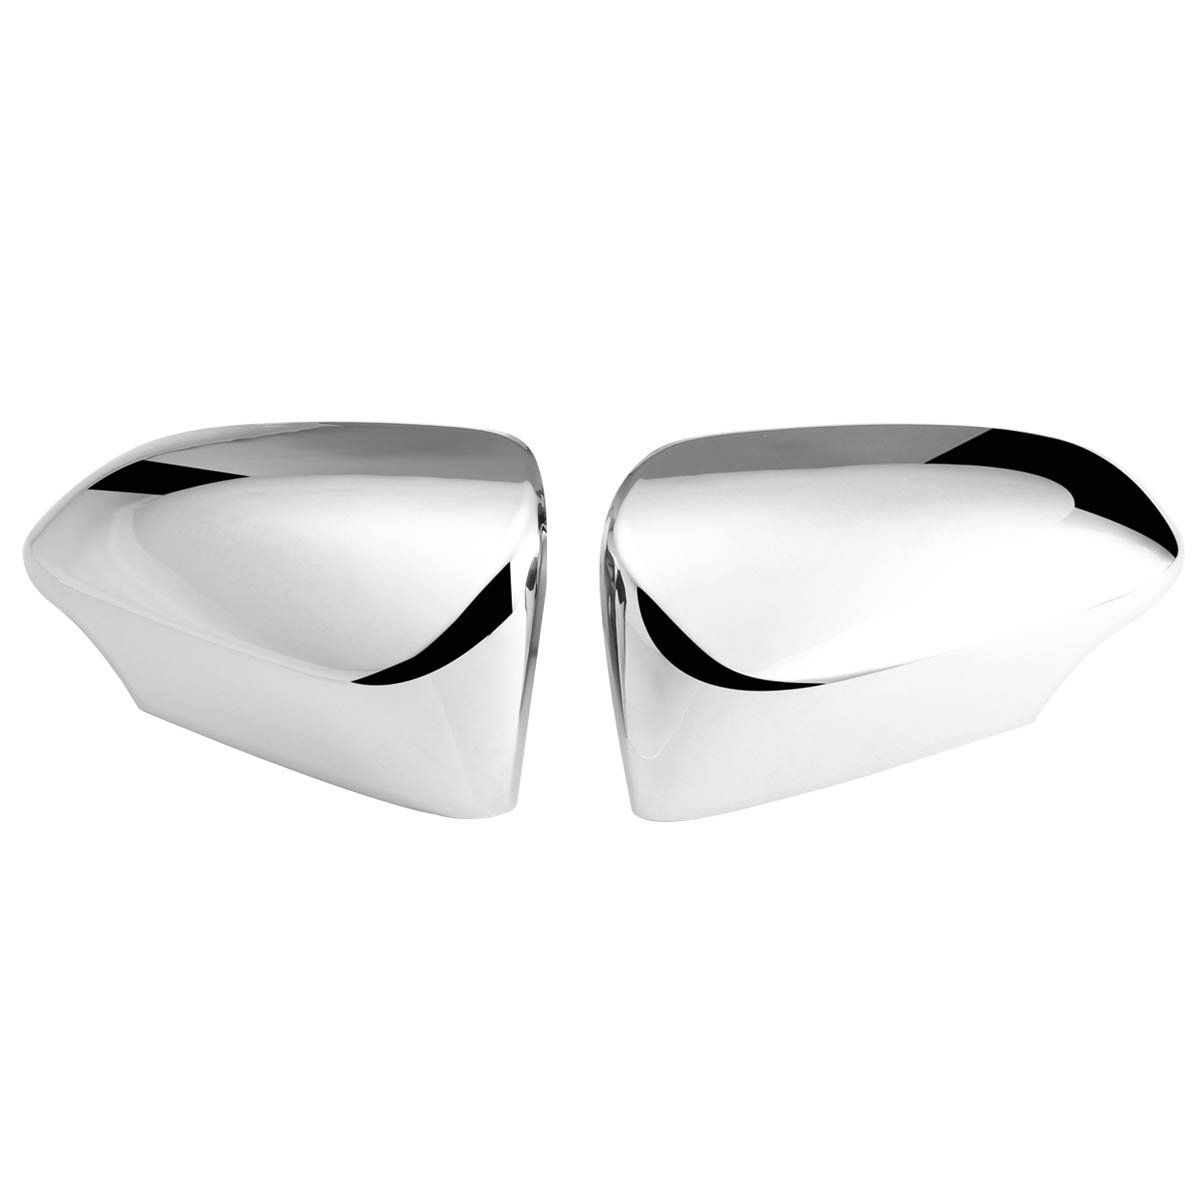 SIDE MIRROR COVERS FOR HYUNDAI i10 GRAND (SET OF 2PCS)